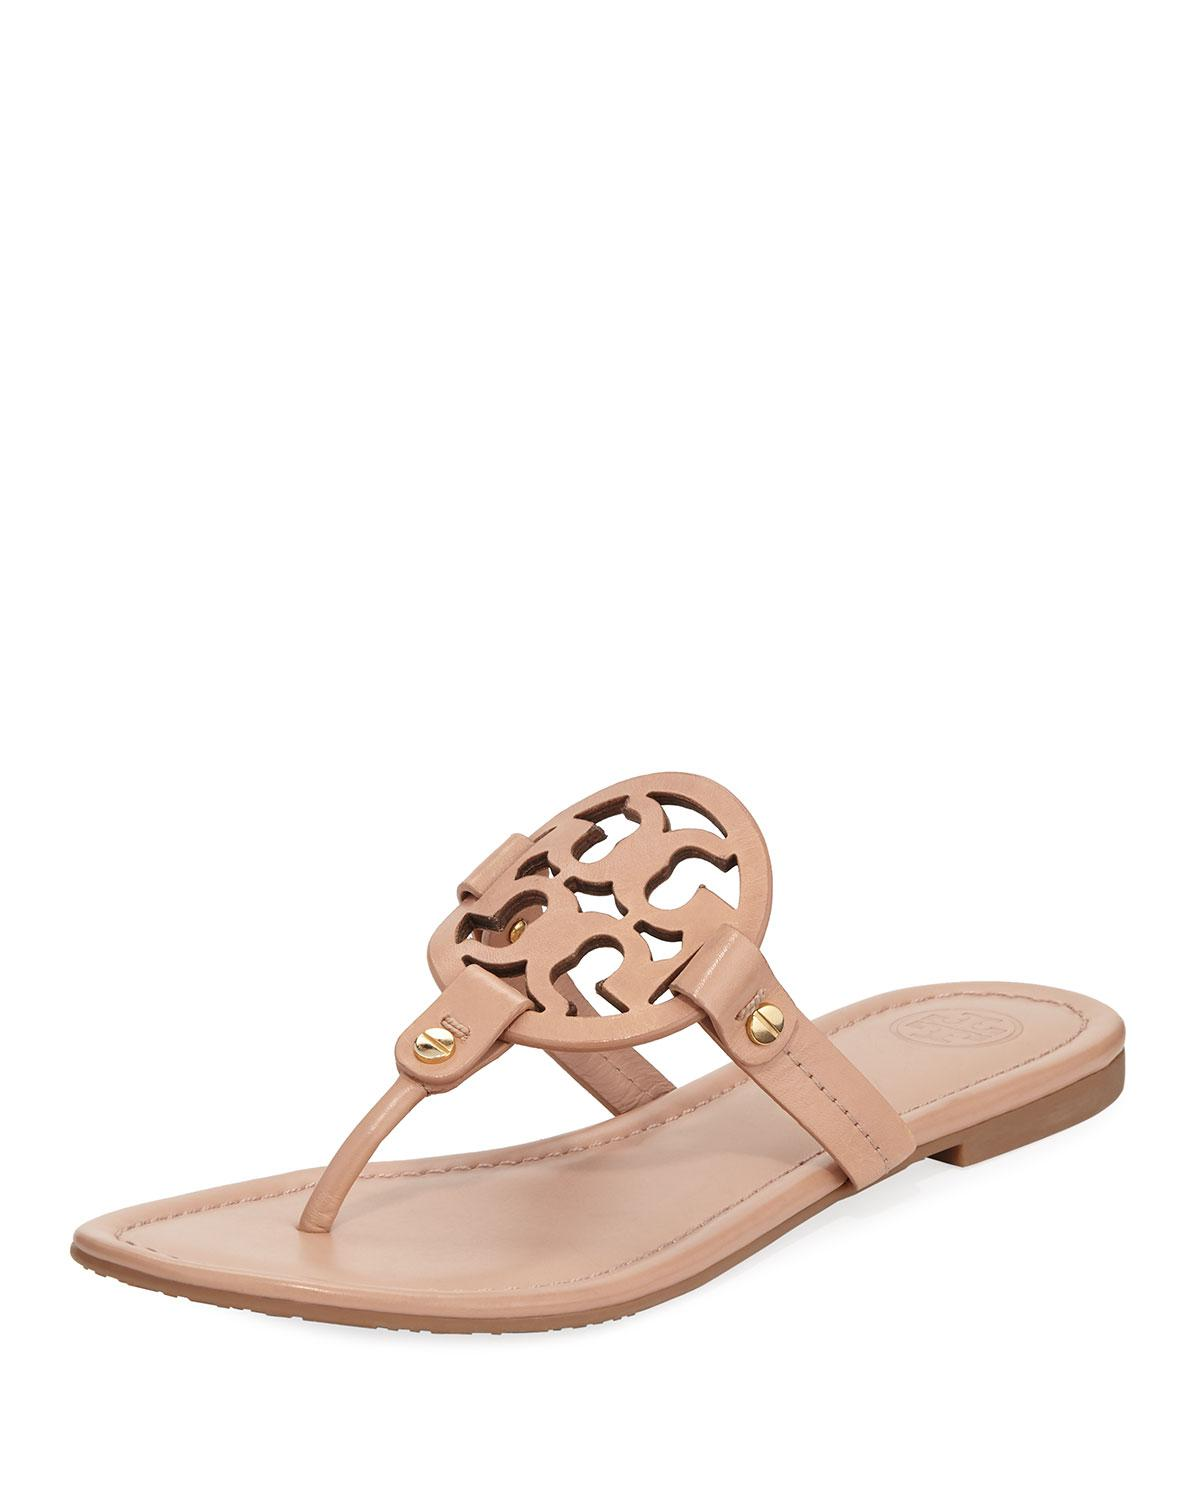 7f06900614e0d7 Tory Burch. Women s Miller Flat Leather Logo Slide Sandal